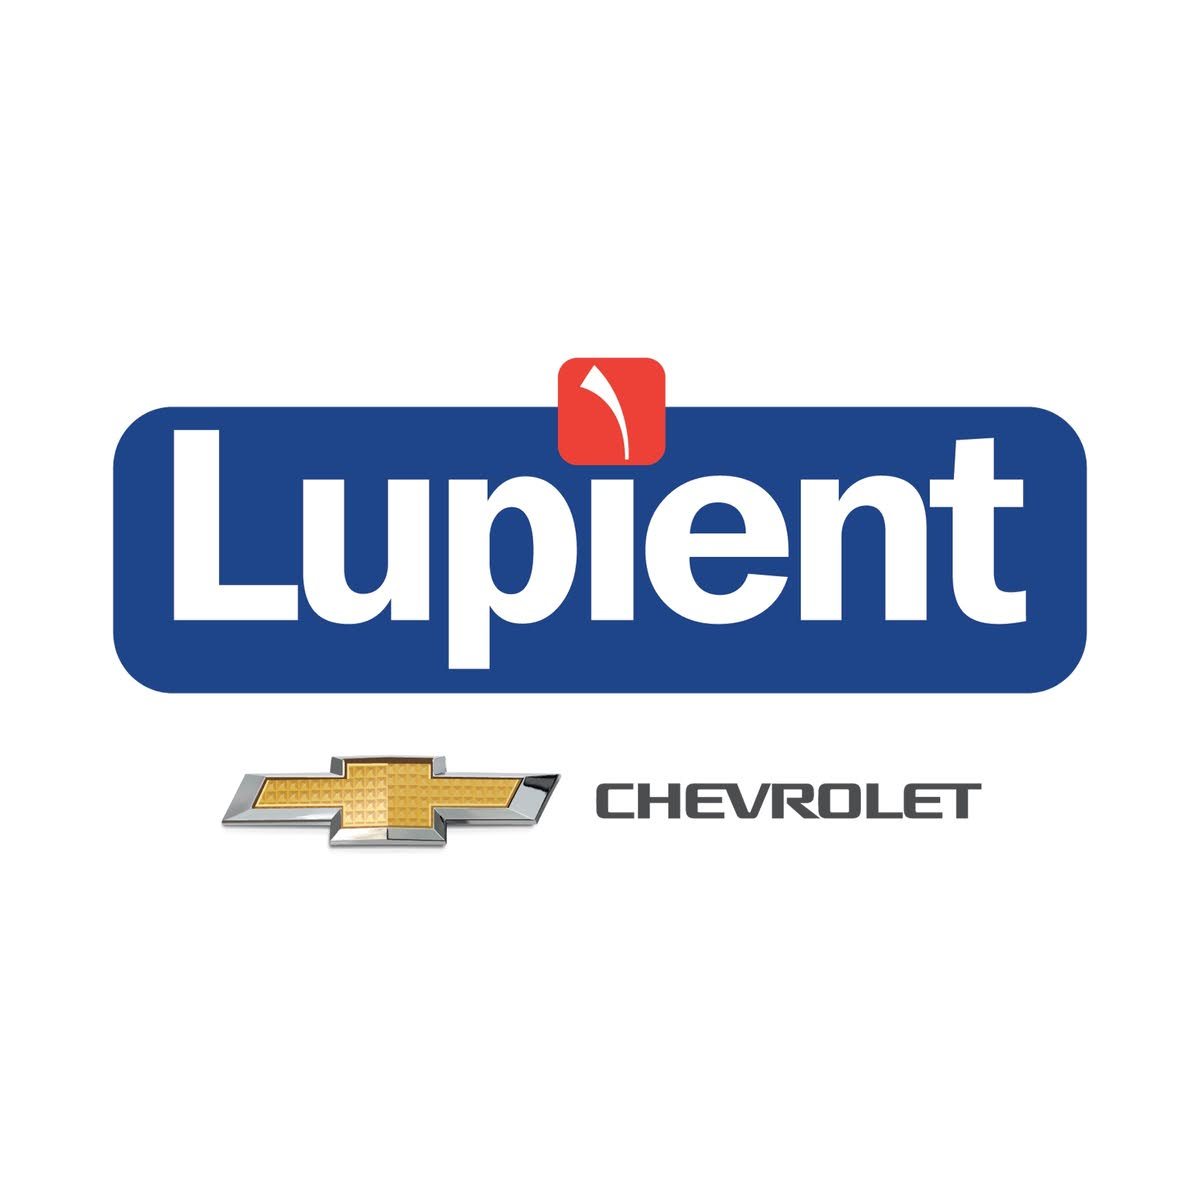 Subaru Dealers Minneapolis >> Lupient Chevrolet - Minneapolis, MN: Read Consumer reviews, Browse Used and New Cars for Sale